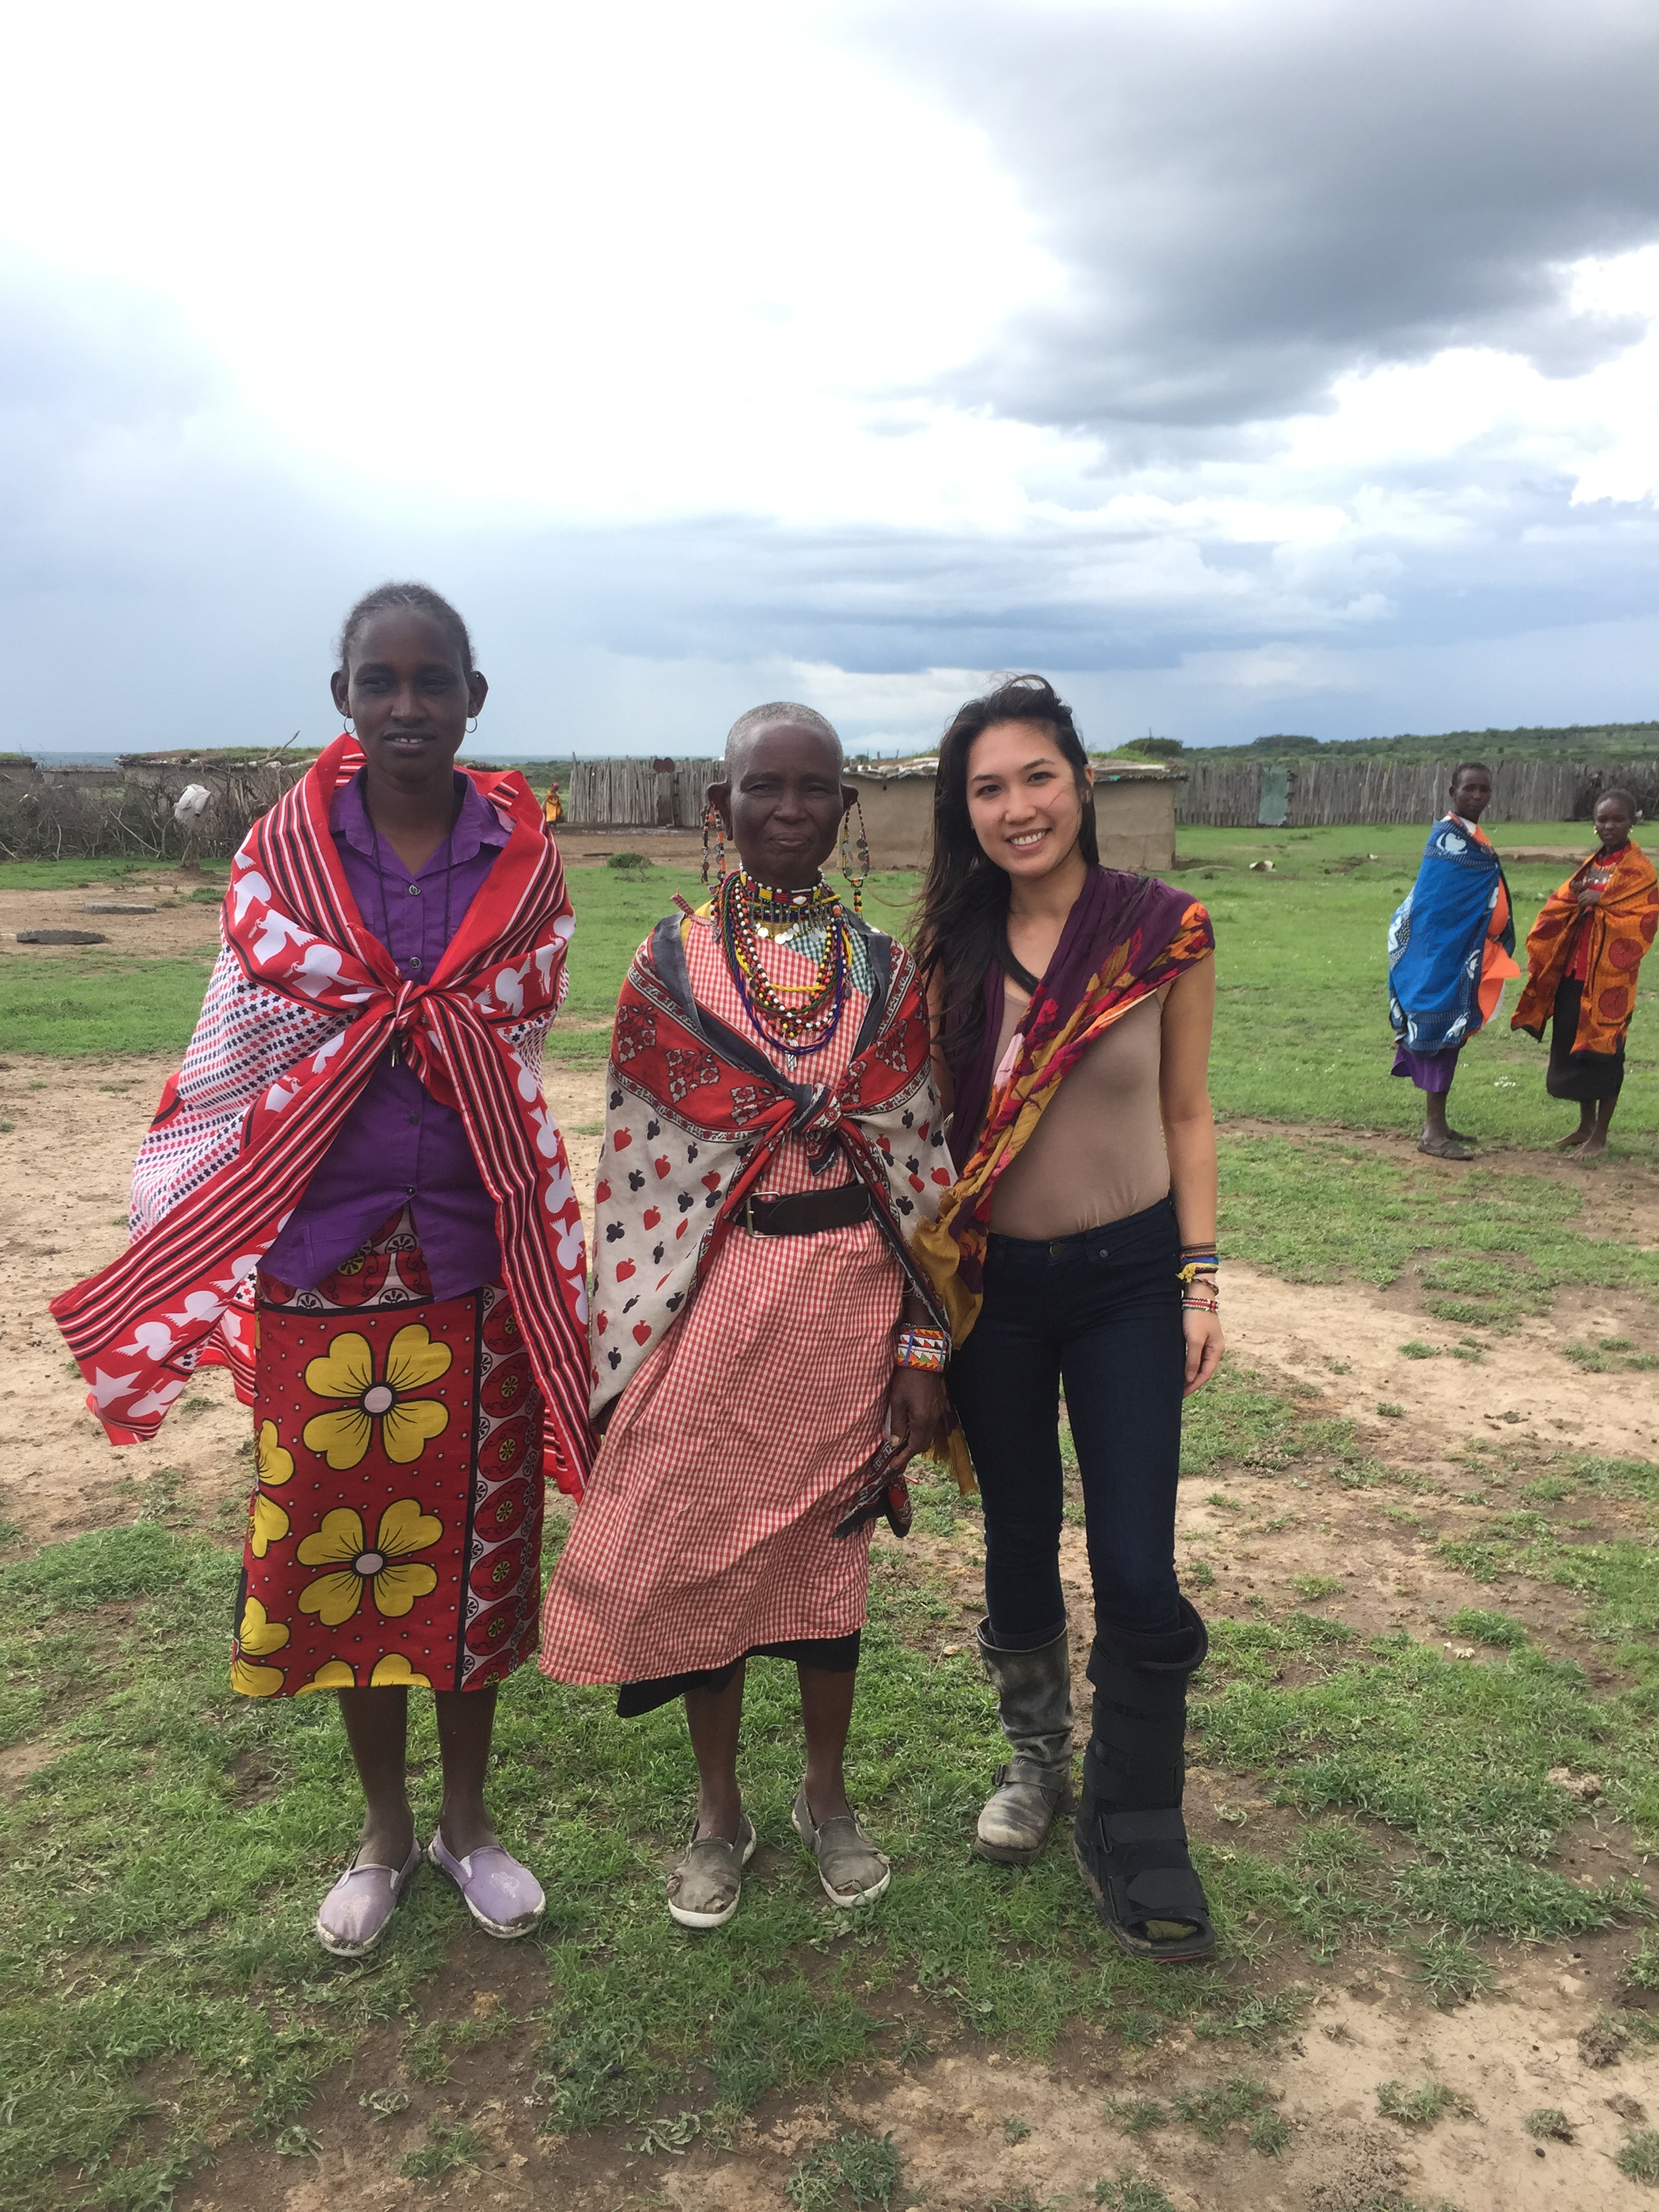 Standing with Mama Williams, the head elder of the village.